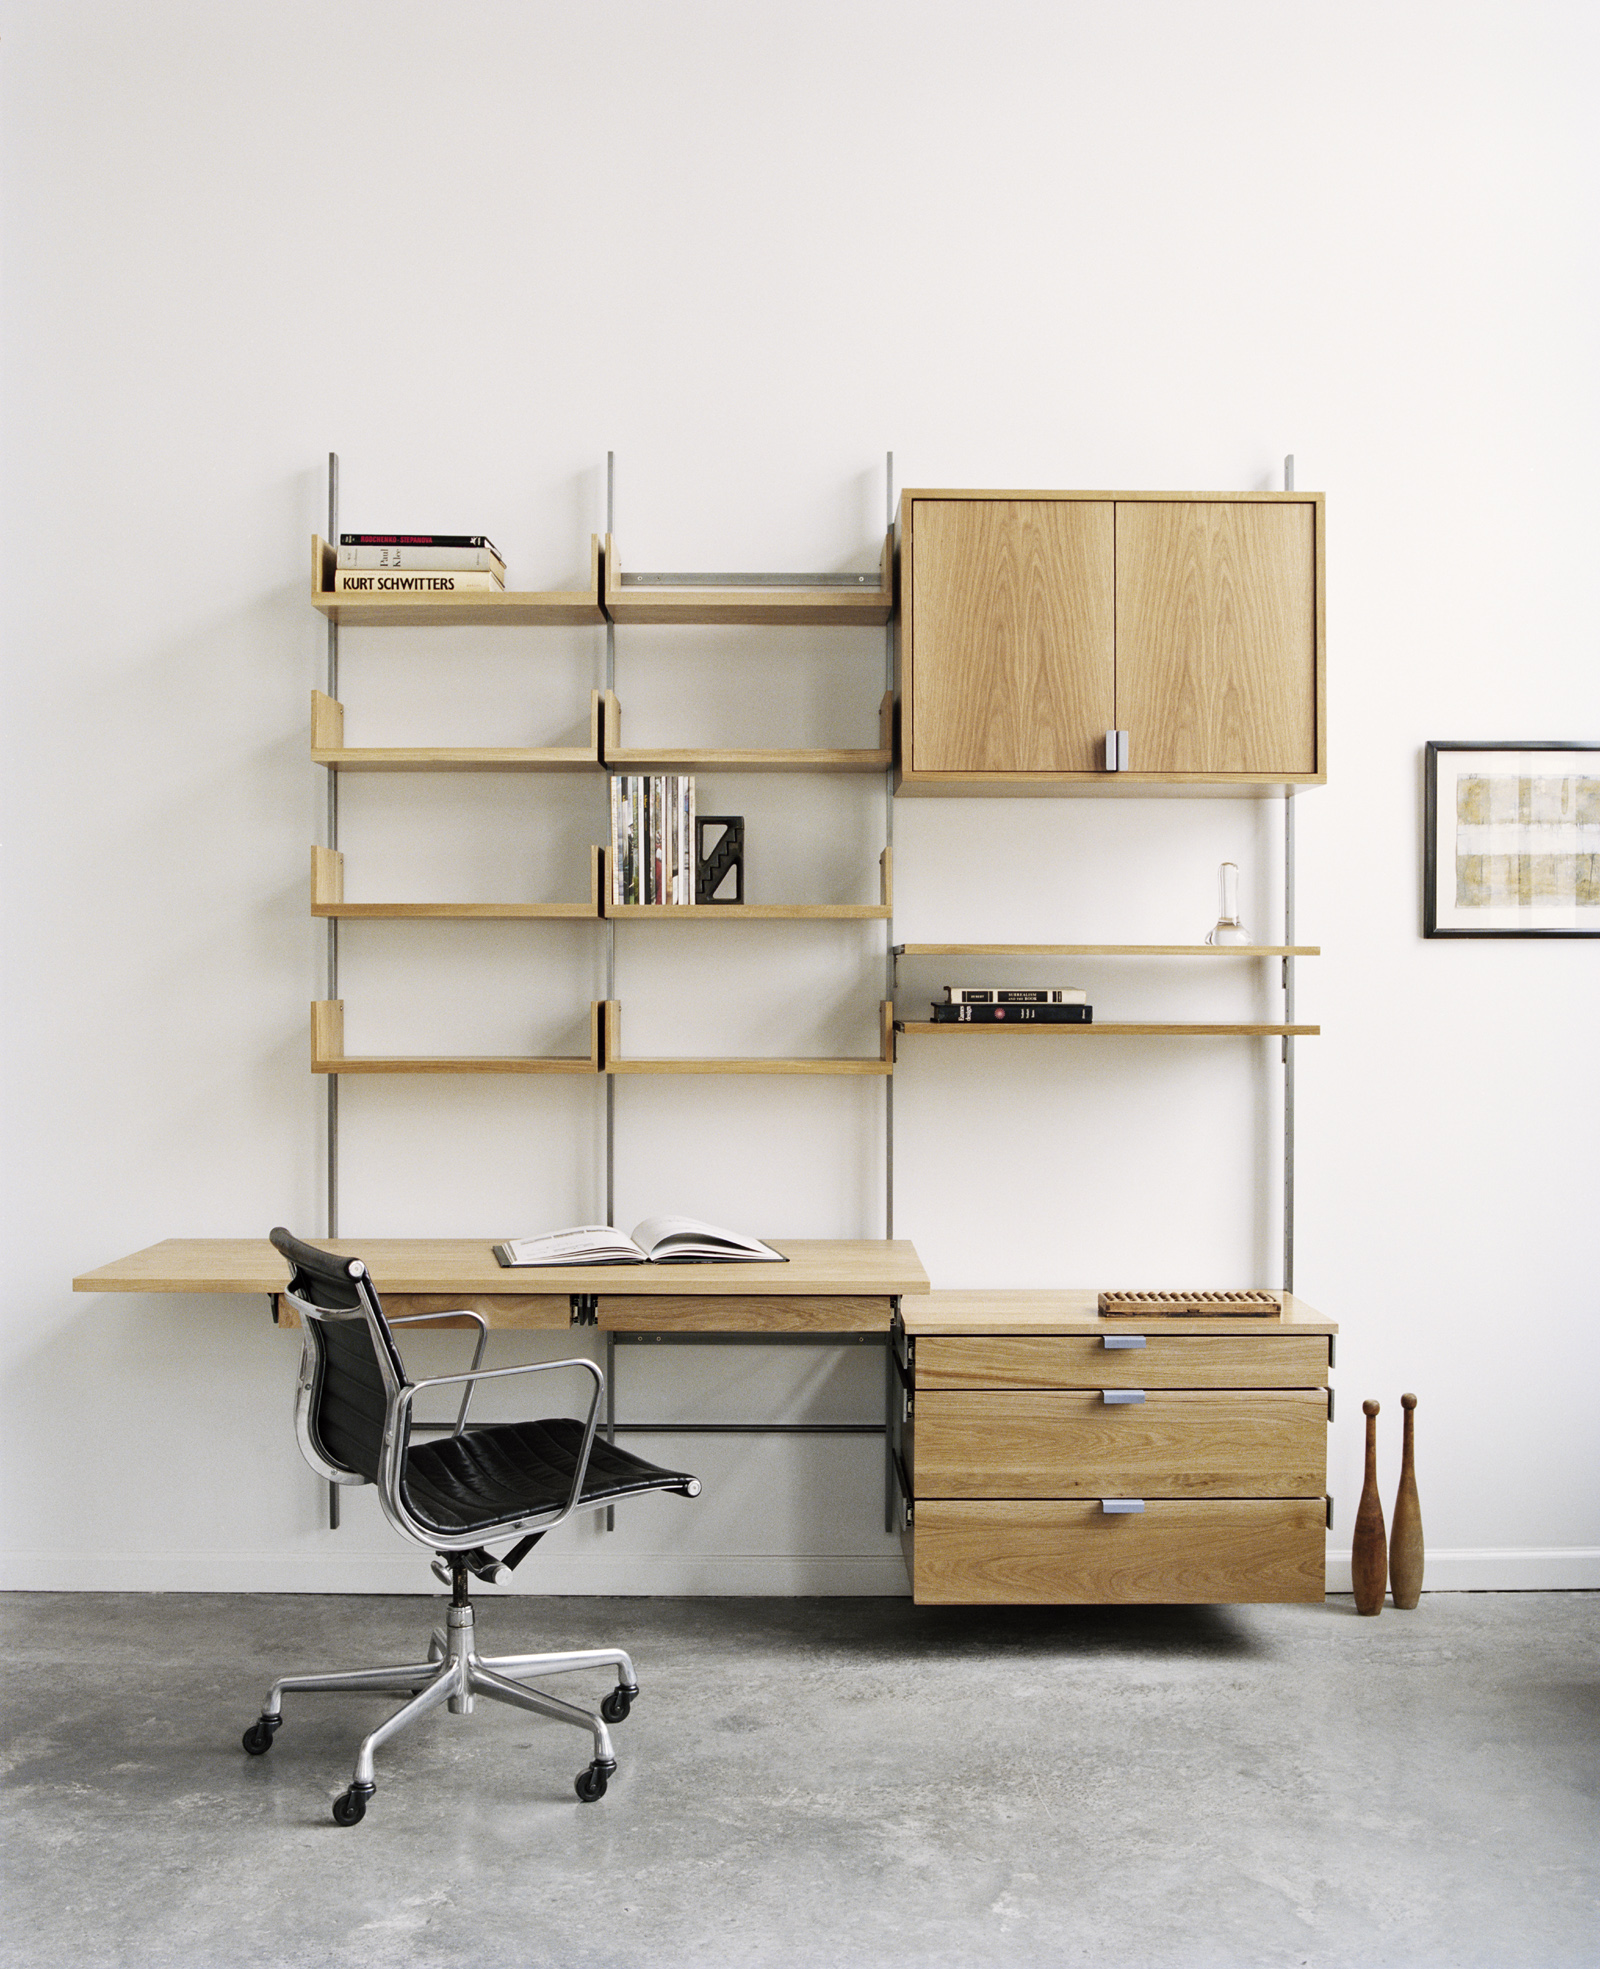 Solid white oak & cold-rolled steel desk configuration. Photograph by: Meredith Heuer